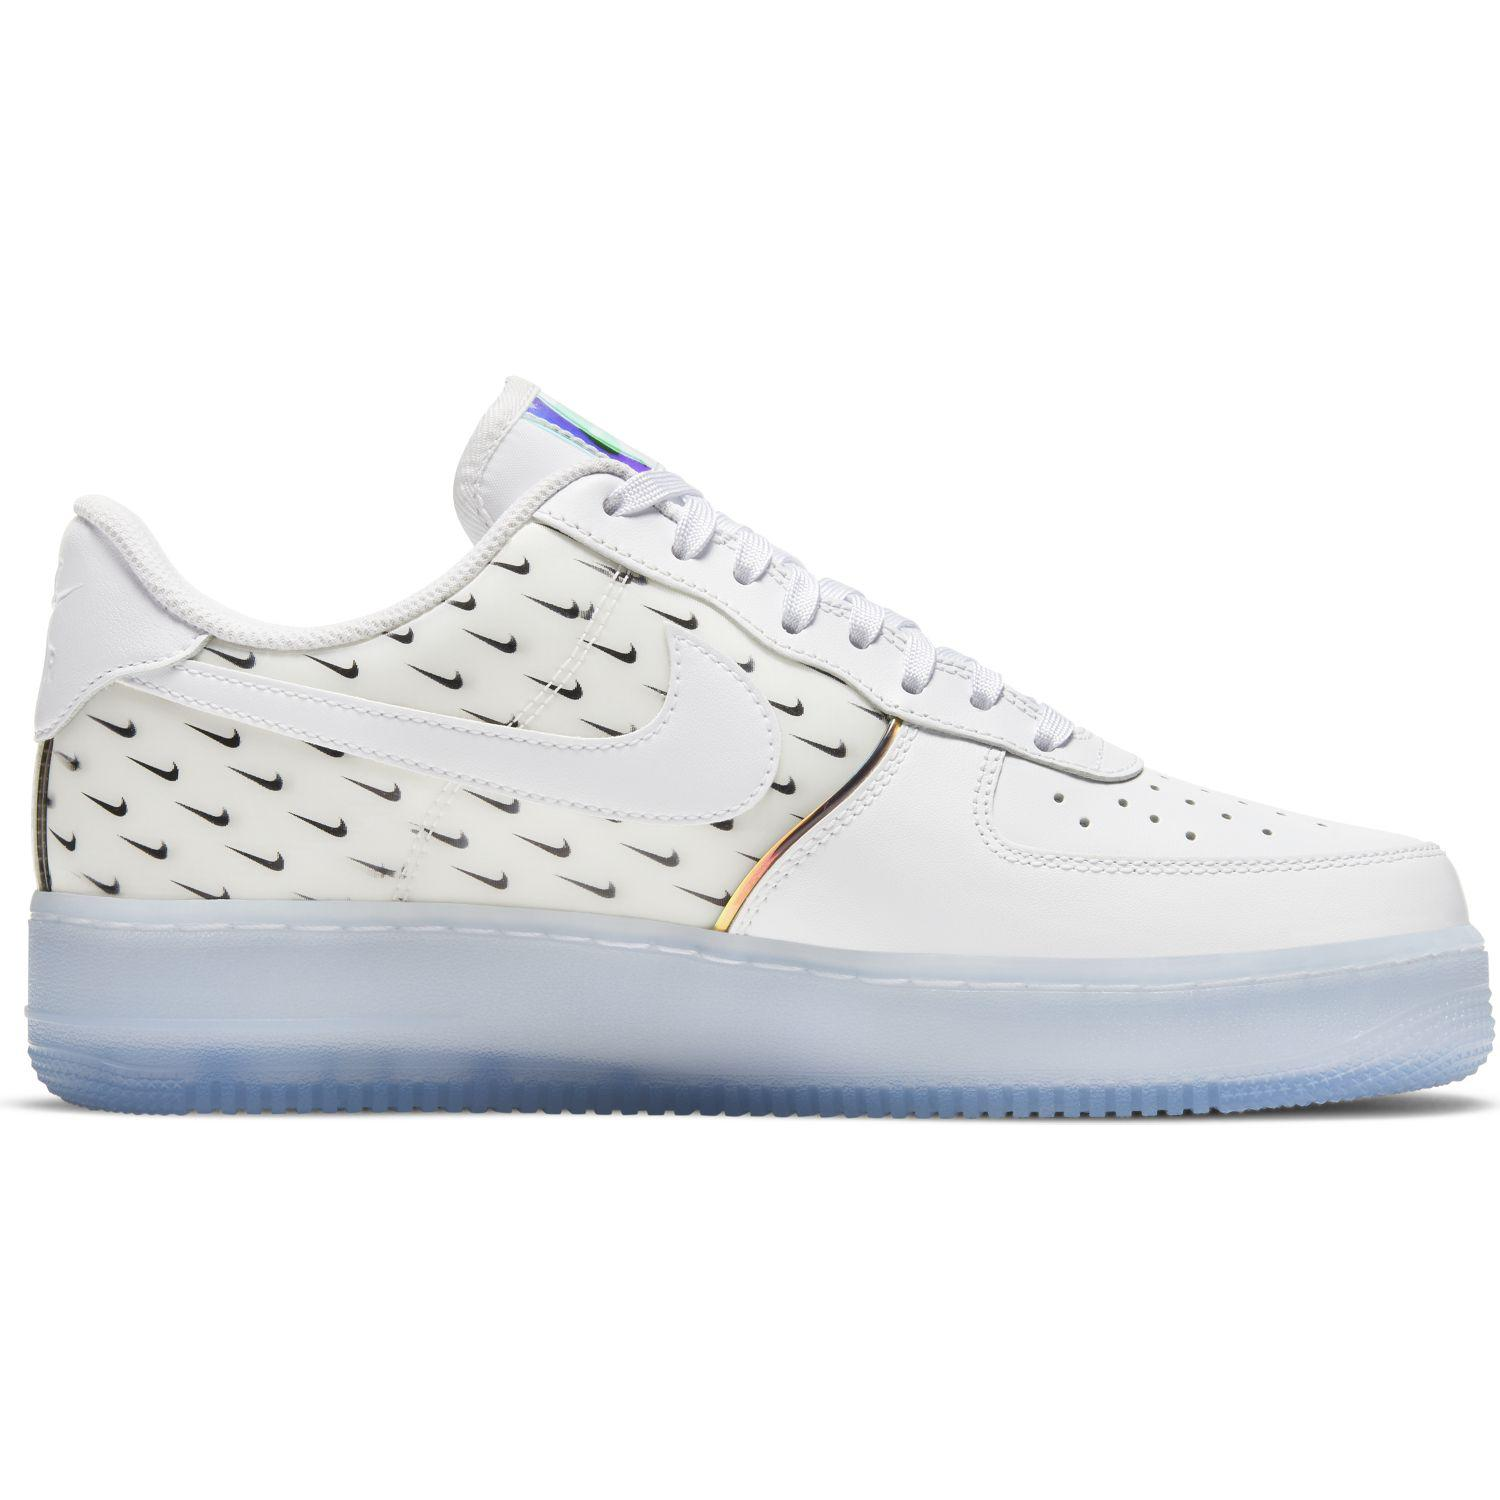 nike-air-force-1-07-prm-ck7804-100-release-20201229